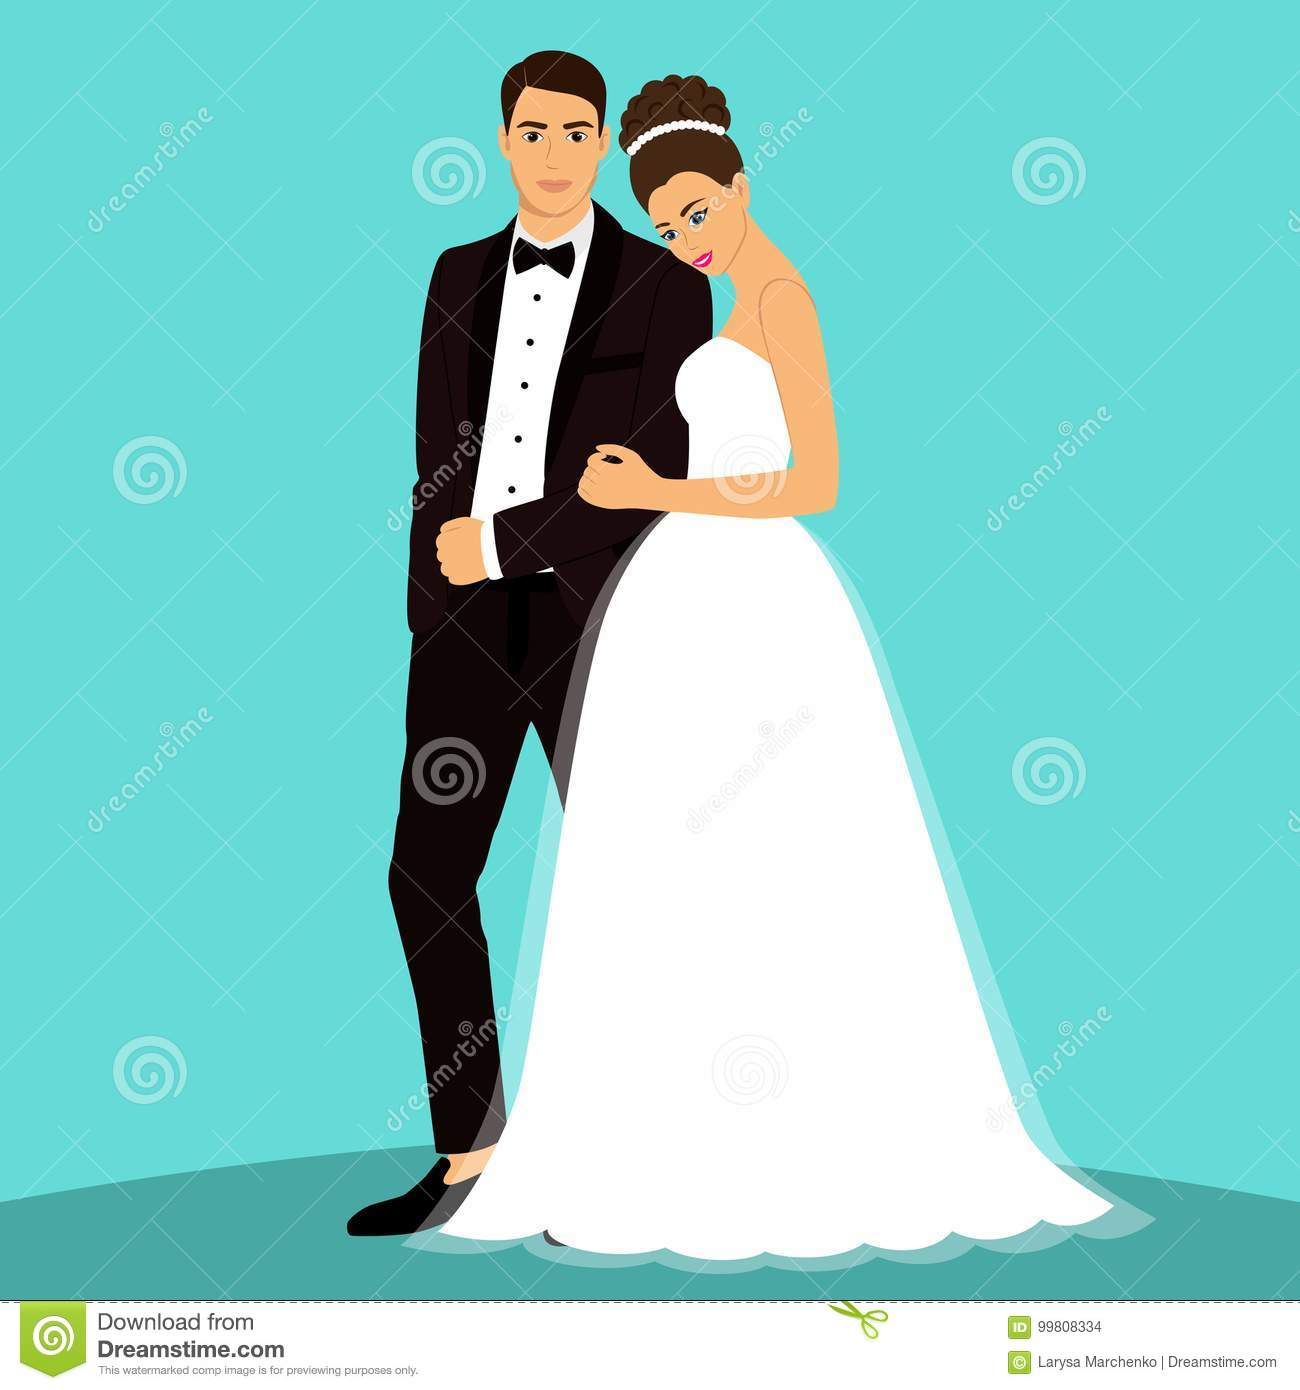 Bride and groom. stock vector. Illustration of invitation - 99808334